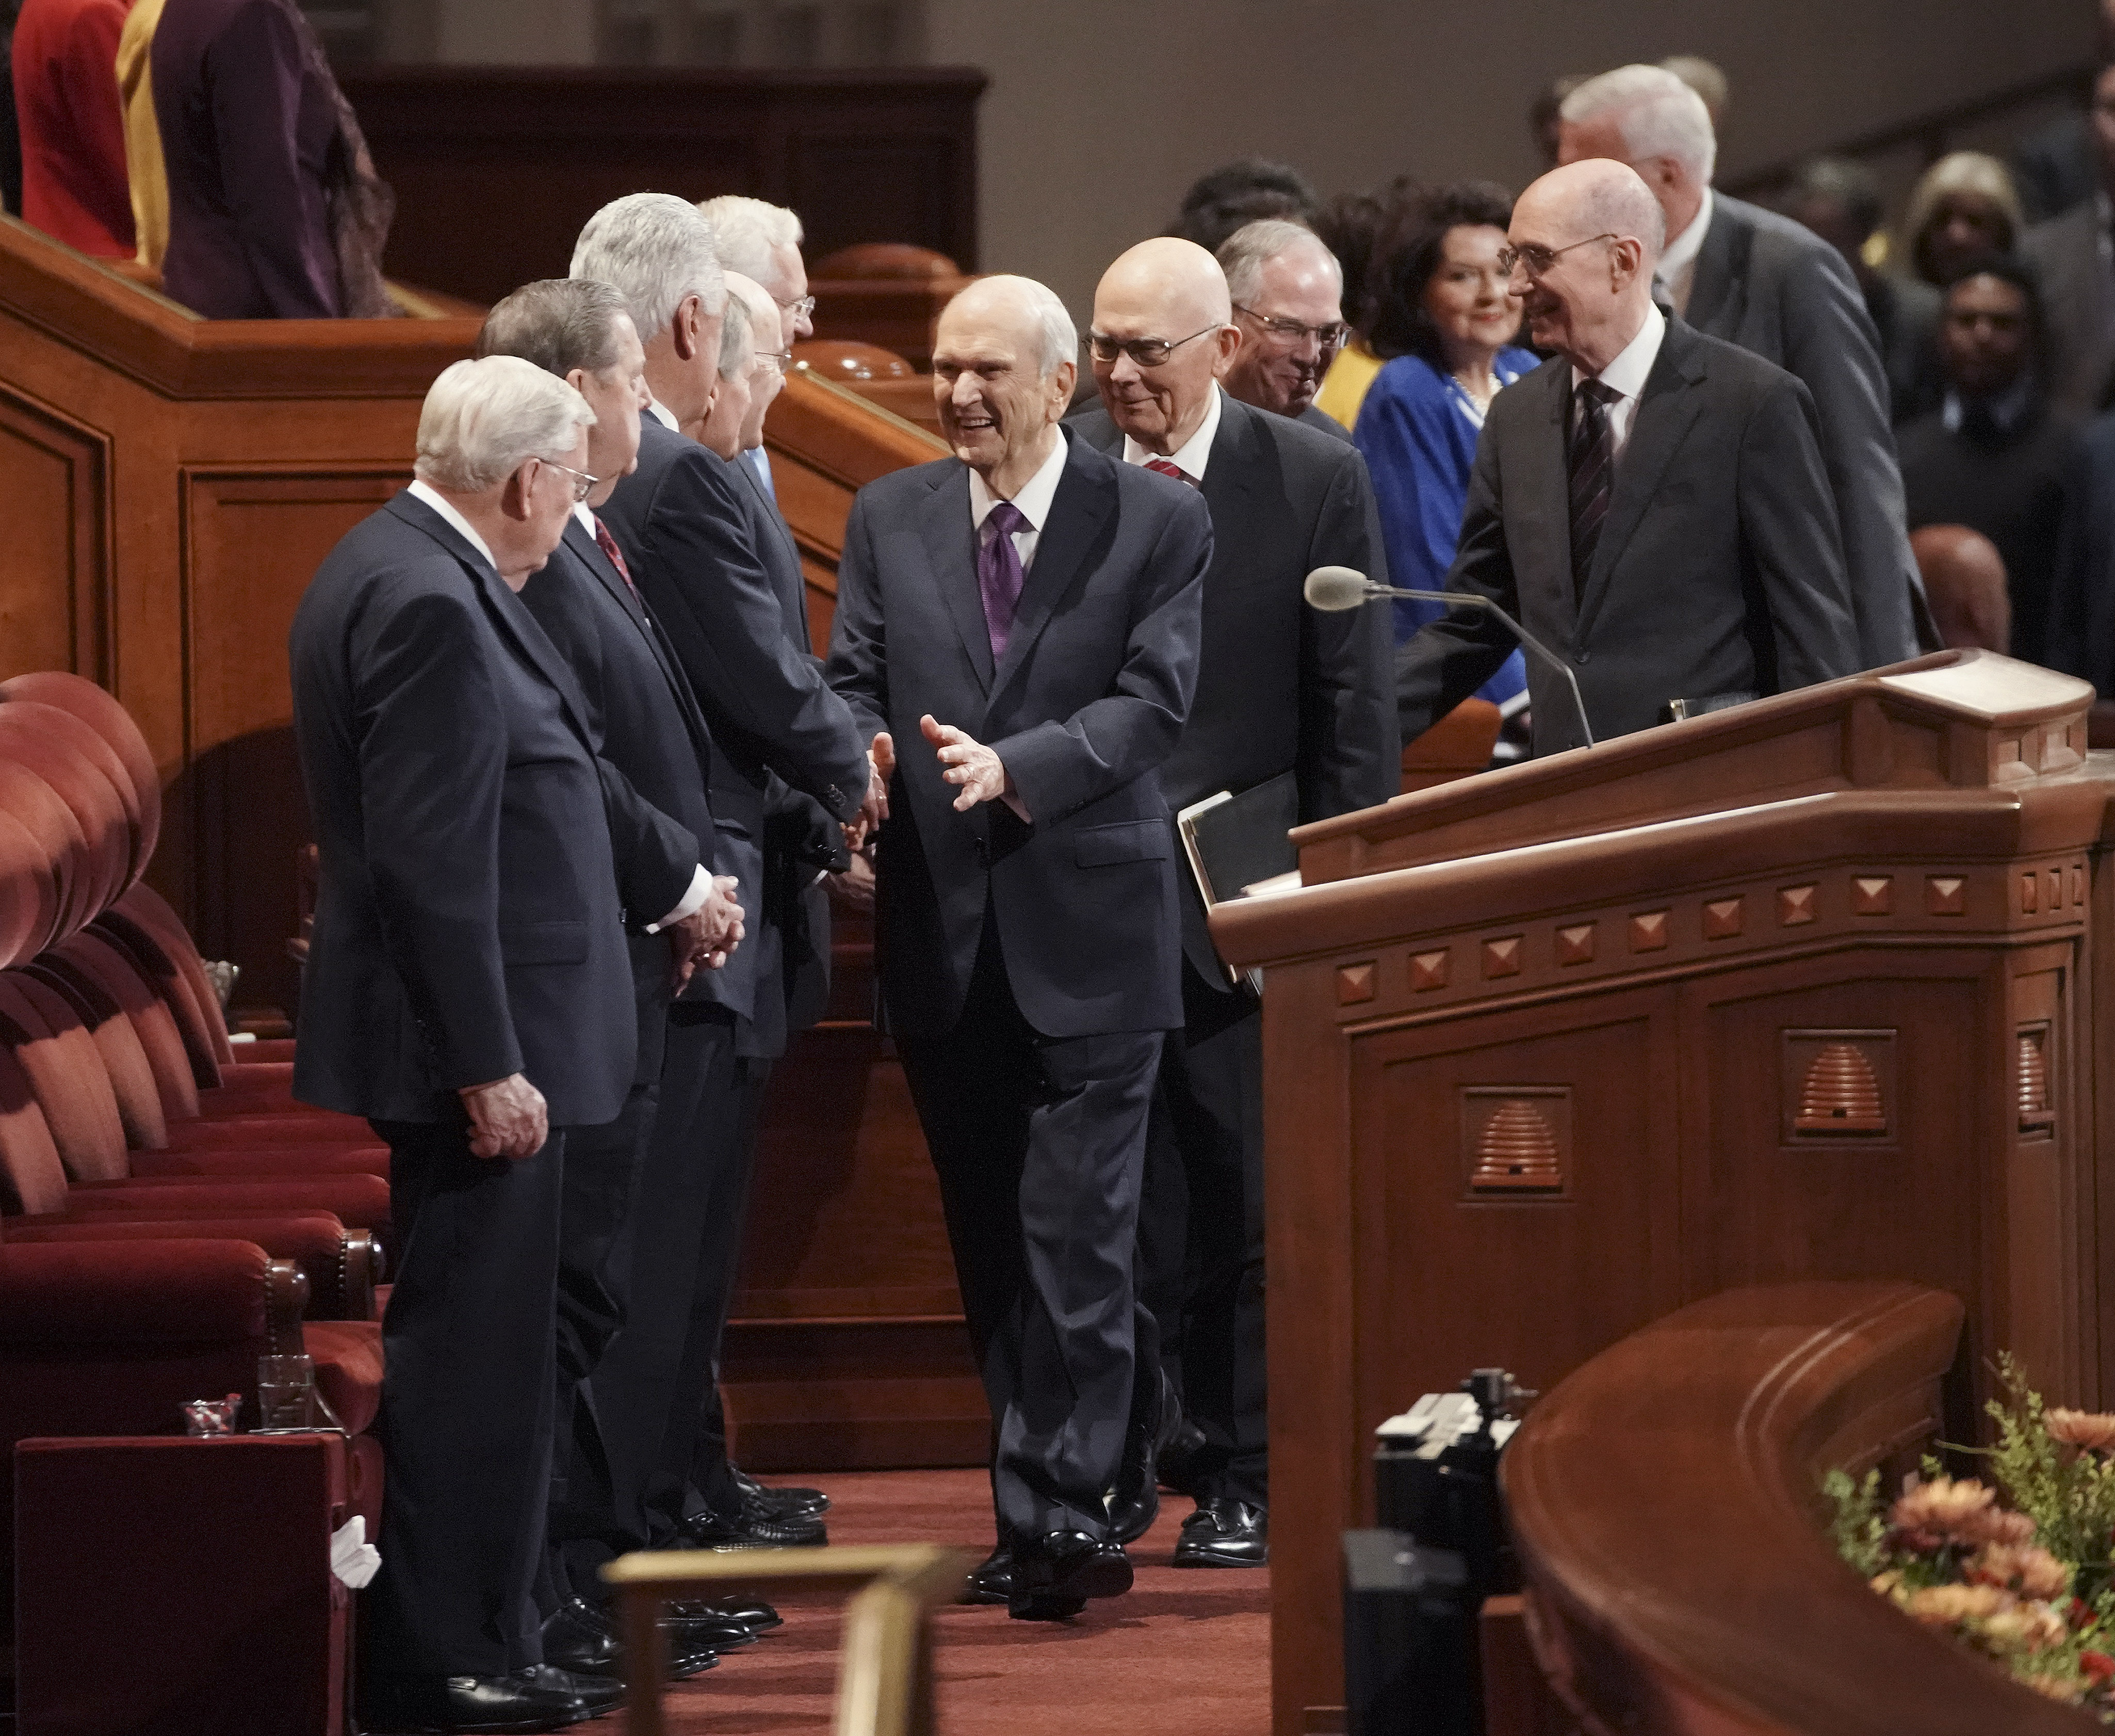 President Russell M. Nelson greets other general authorities before the Saturday afternoon of the 189th Semiannual General Conference of The Church of Jesus Christ of Latter-day Saints in the Conference Center in Salt Lake City on Saturday, Oct. 5, 2019.